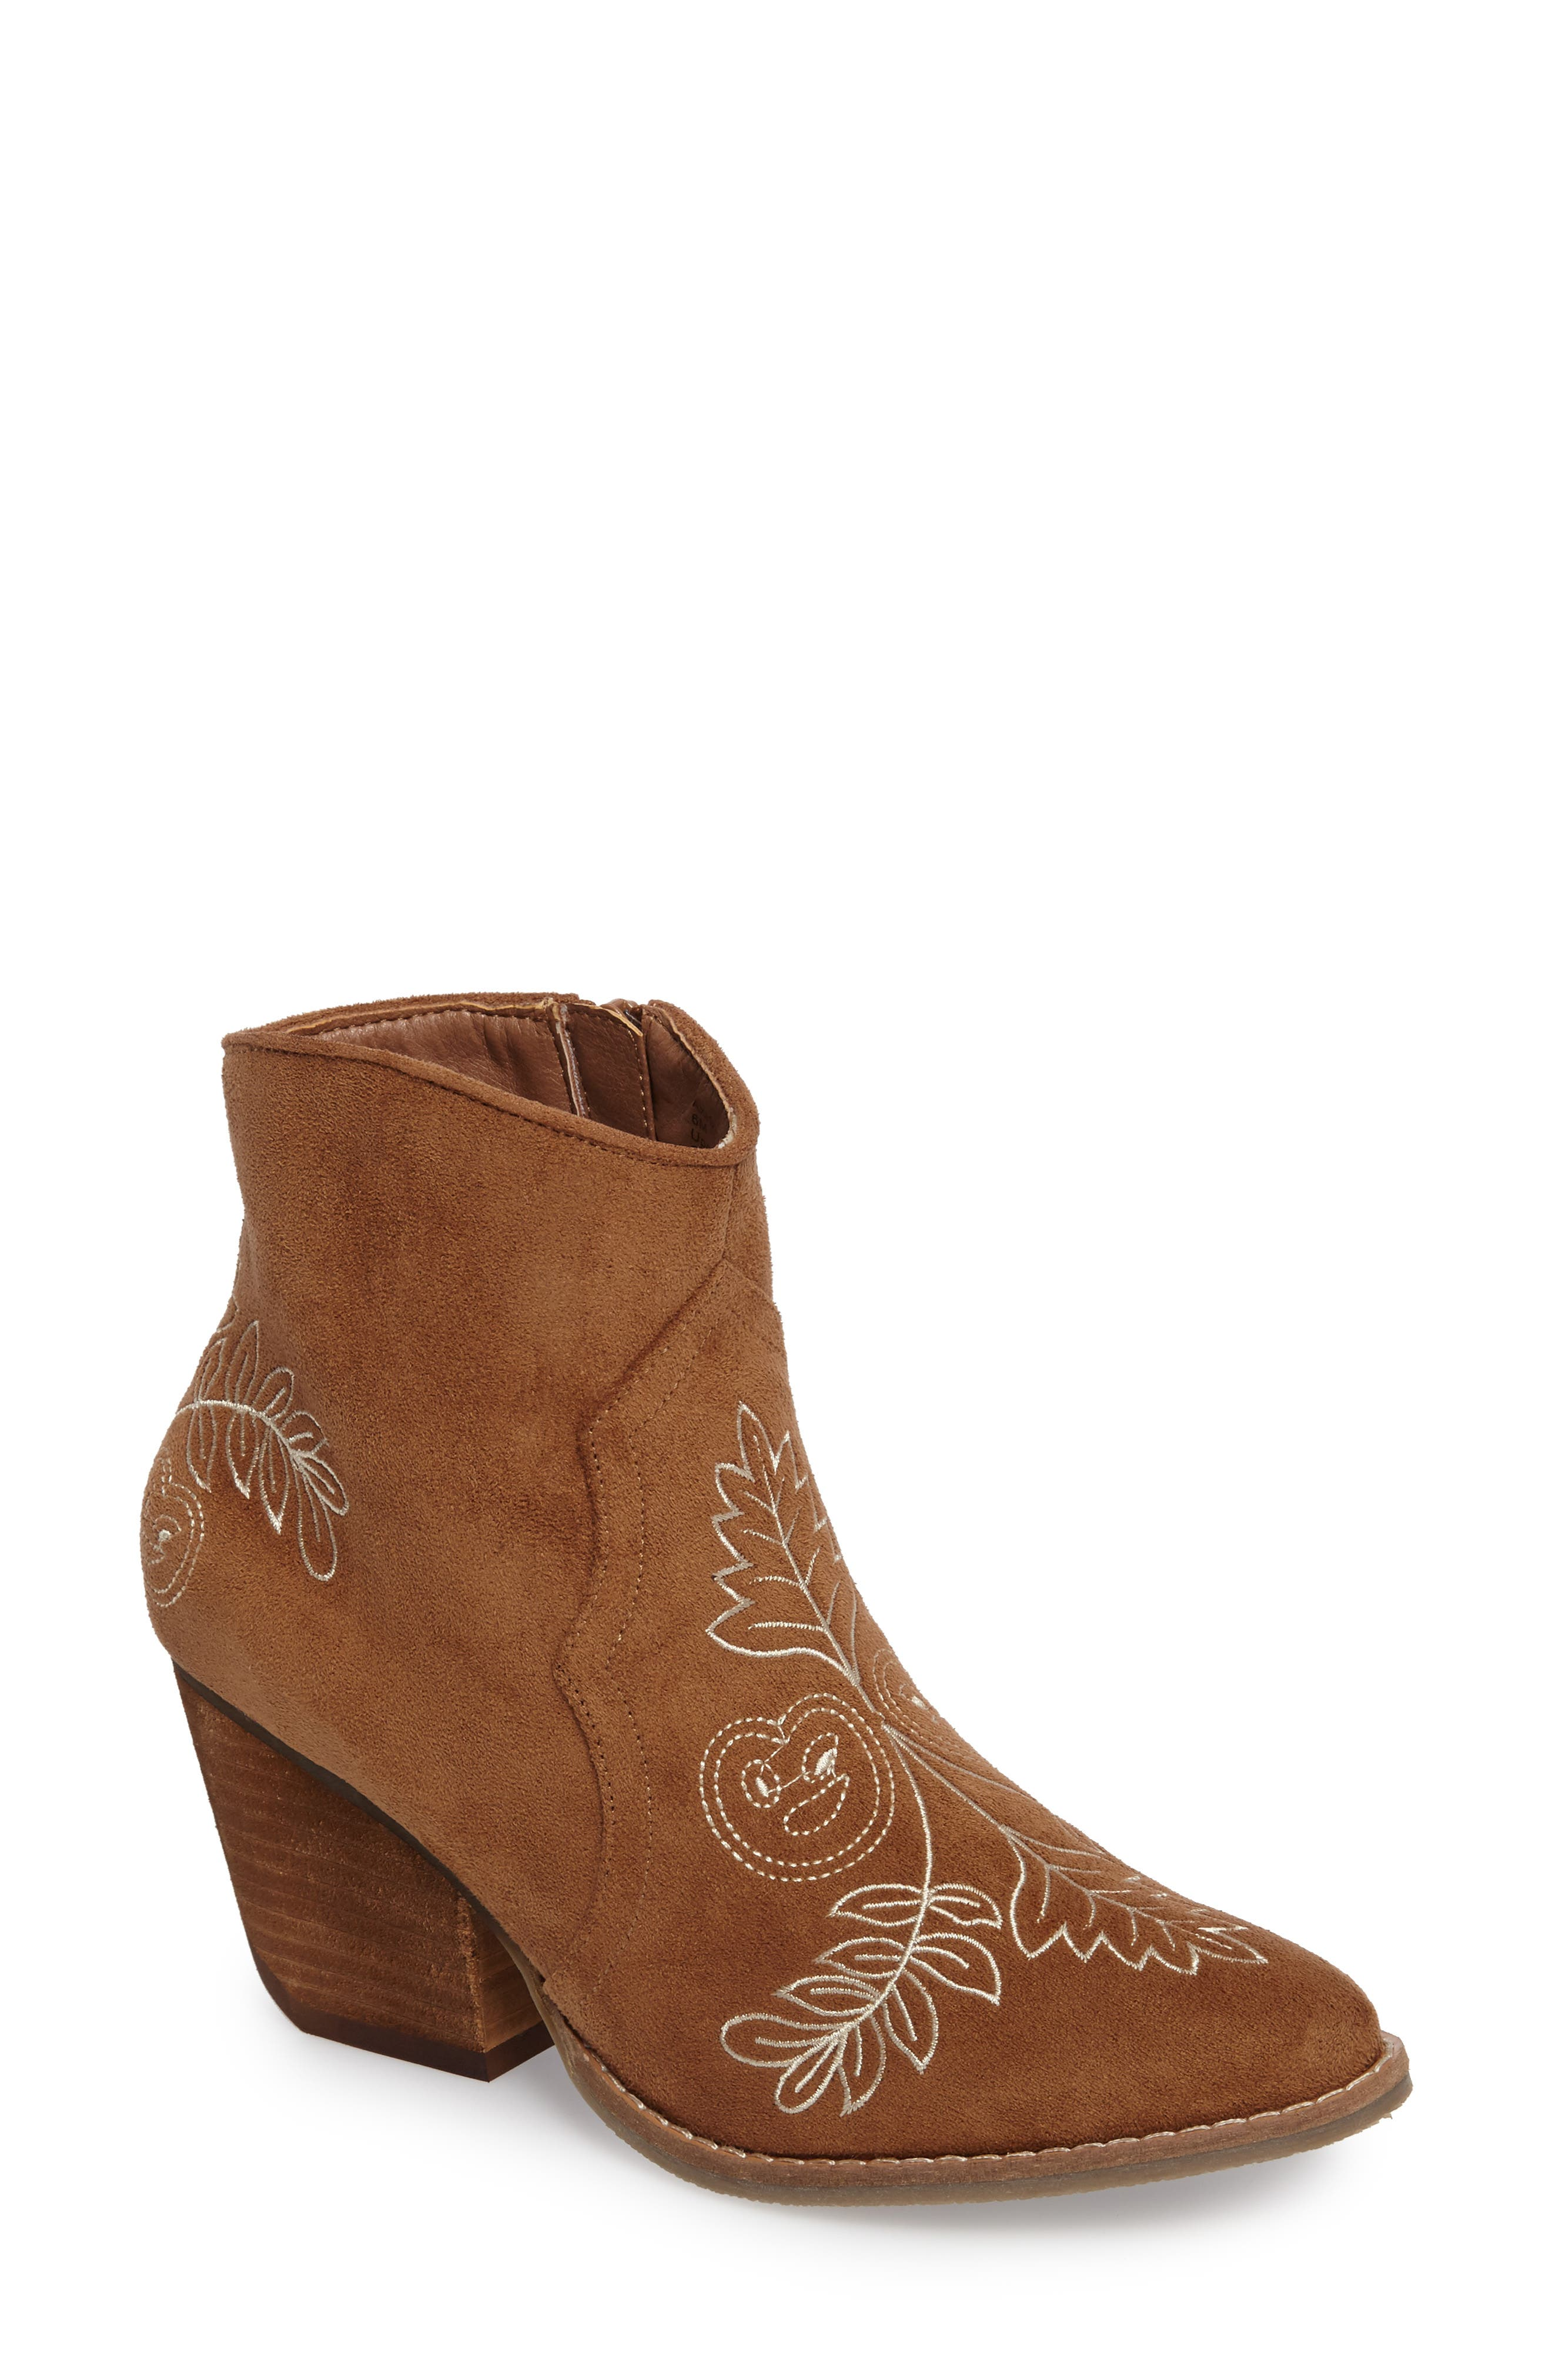 Axis Embroidered Bootie,                         Main,                         color,